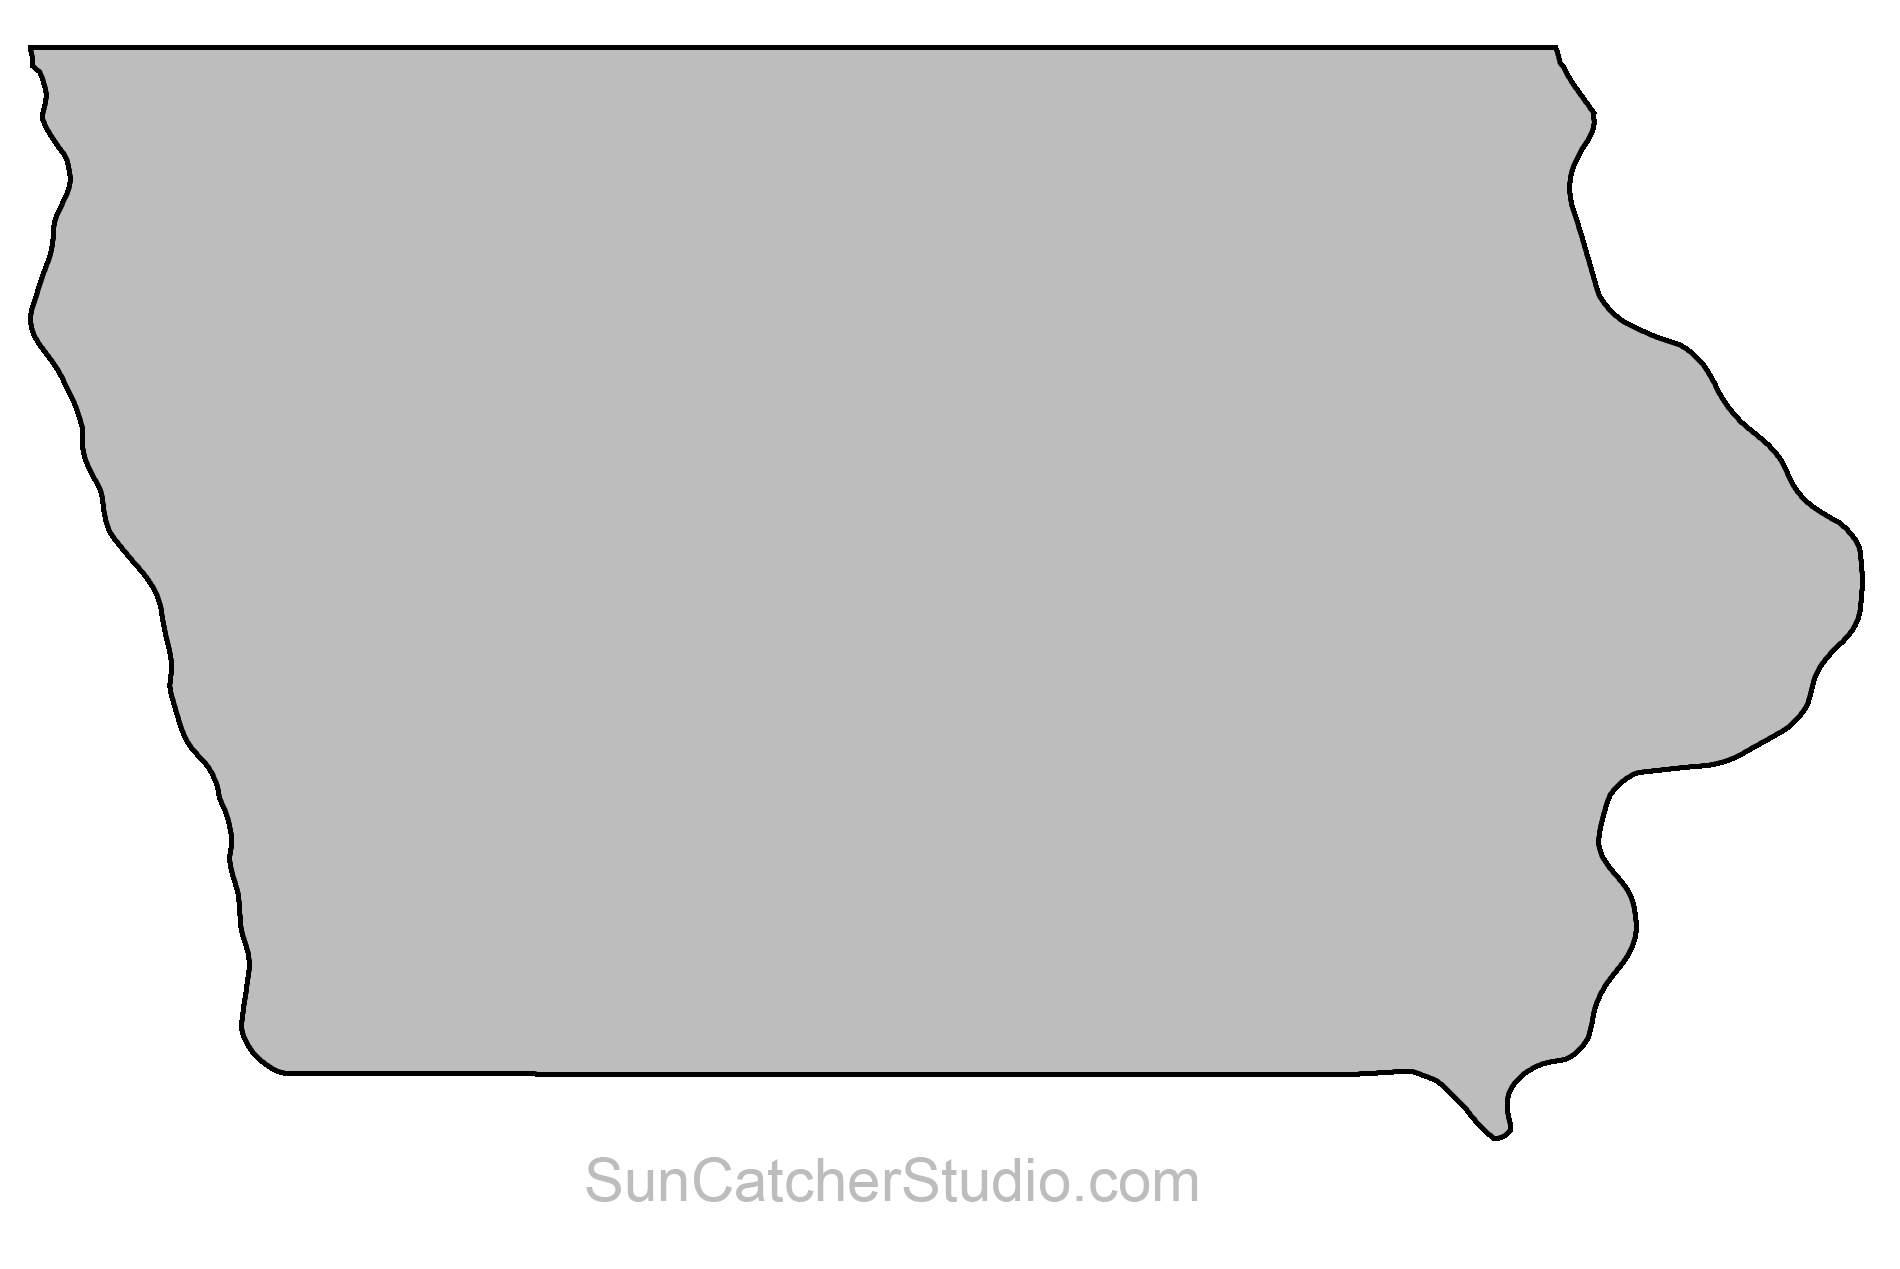 Iowa state map outline clipart images gallery for free download.